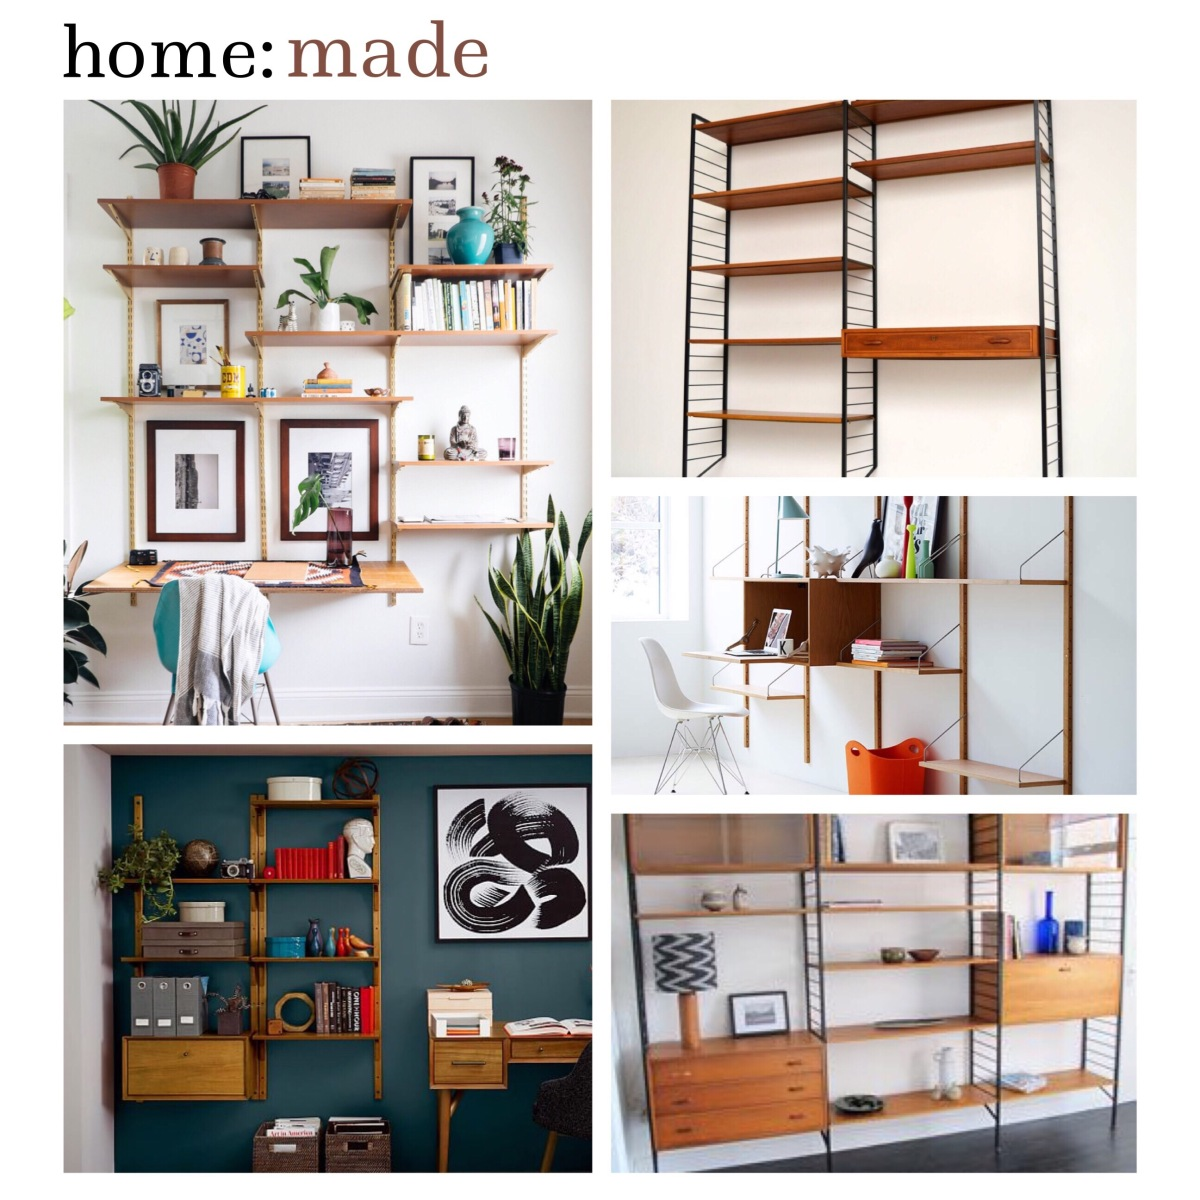 Marvelous photograph of home: made [ midcentury shelving ] – home:blog with #9B5830 color and 1200x1200 pixels